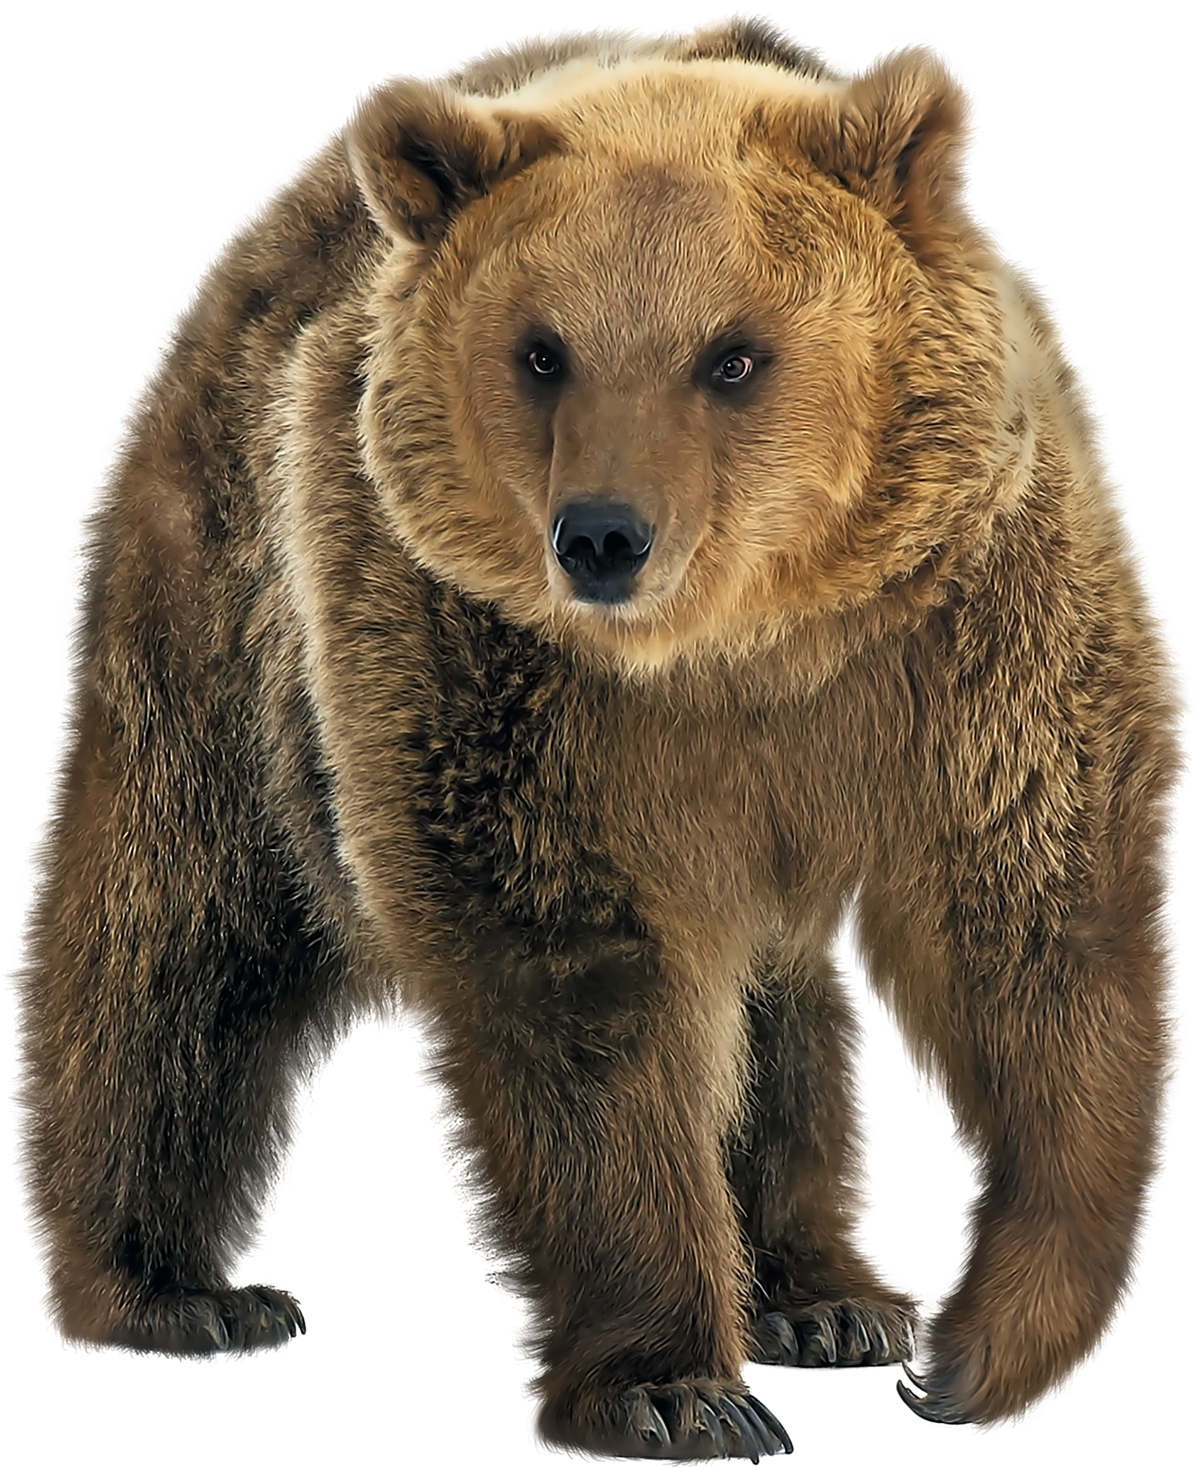 Brown Bear PNG Transparent Image.